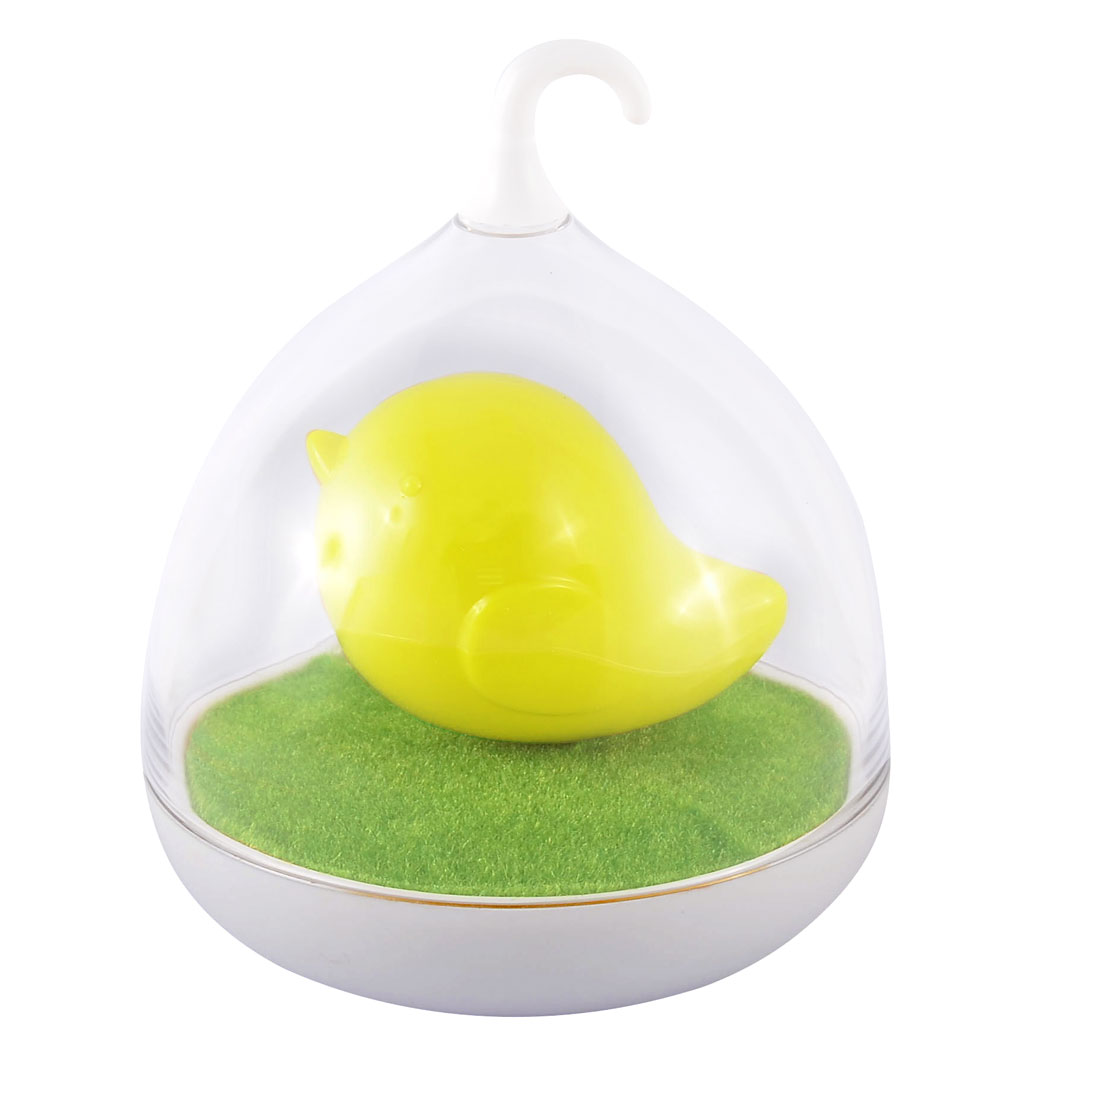 LED Intelligent Induction Birdcage Lamp Creative Voice Control Bedside Lamp Yellow